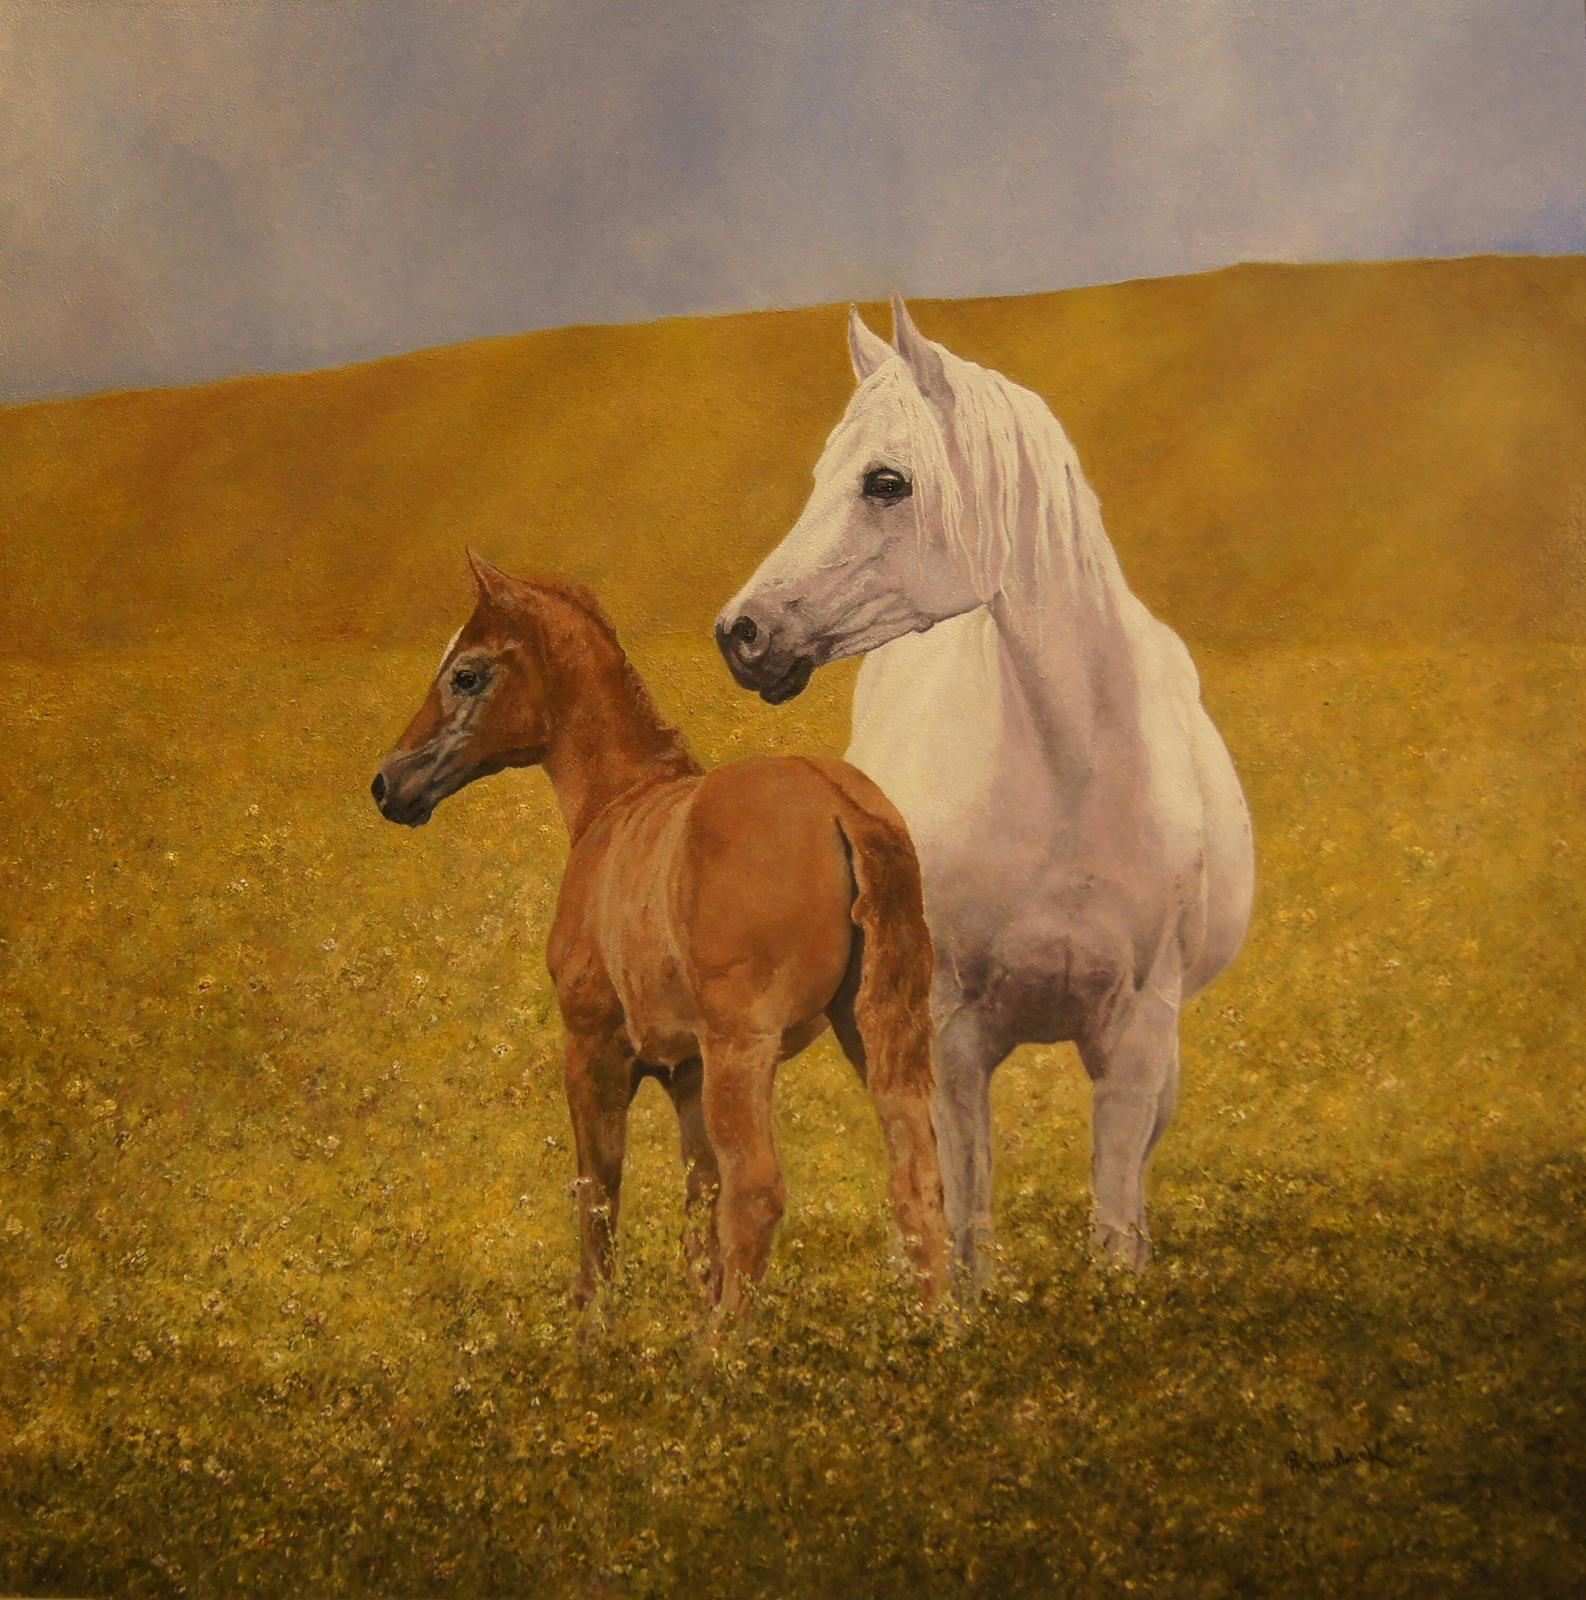 'Horse and Foal'